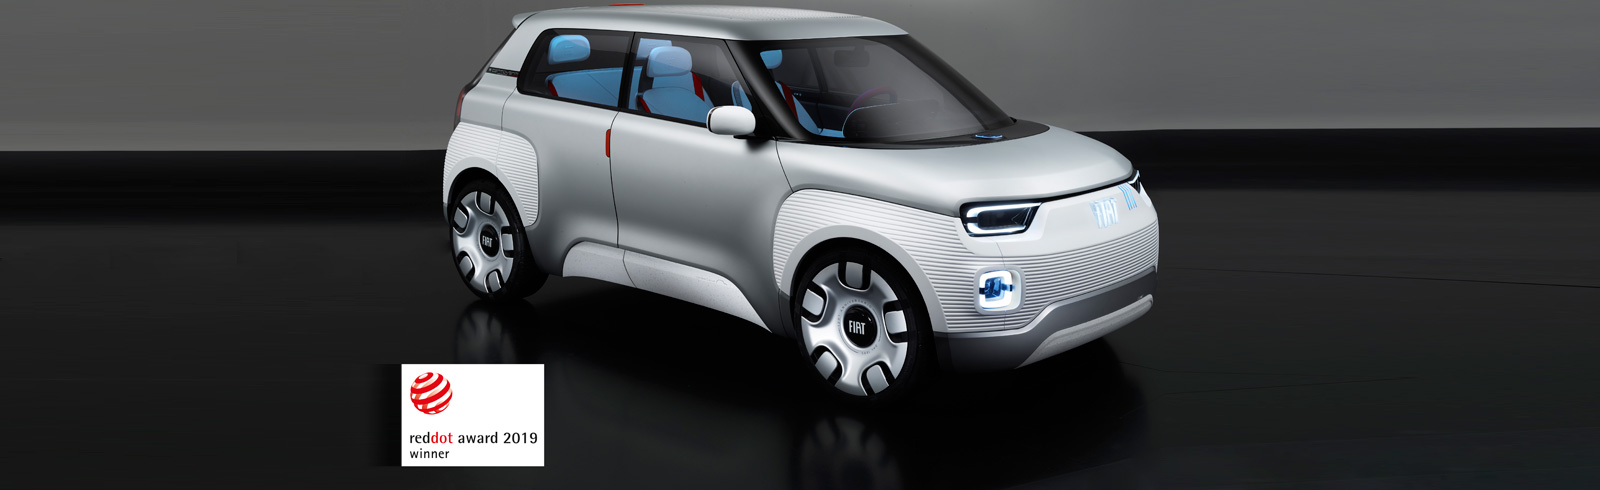 The Fiat Concept Centoventi receives a Red Dot Award 2019